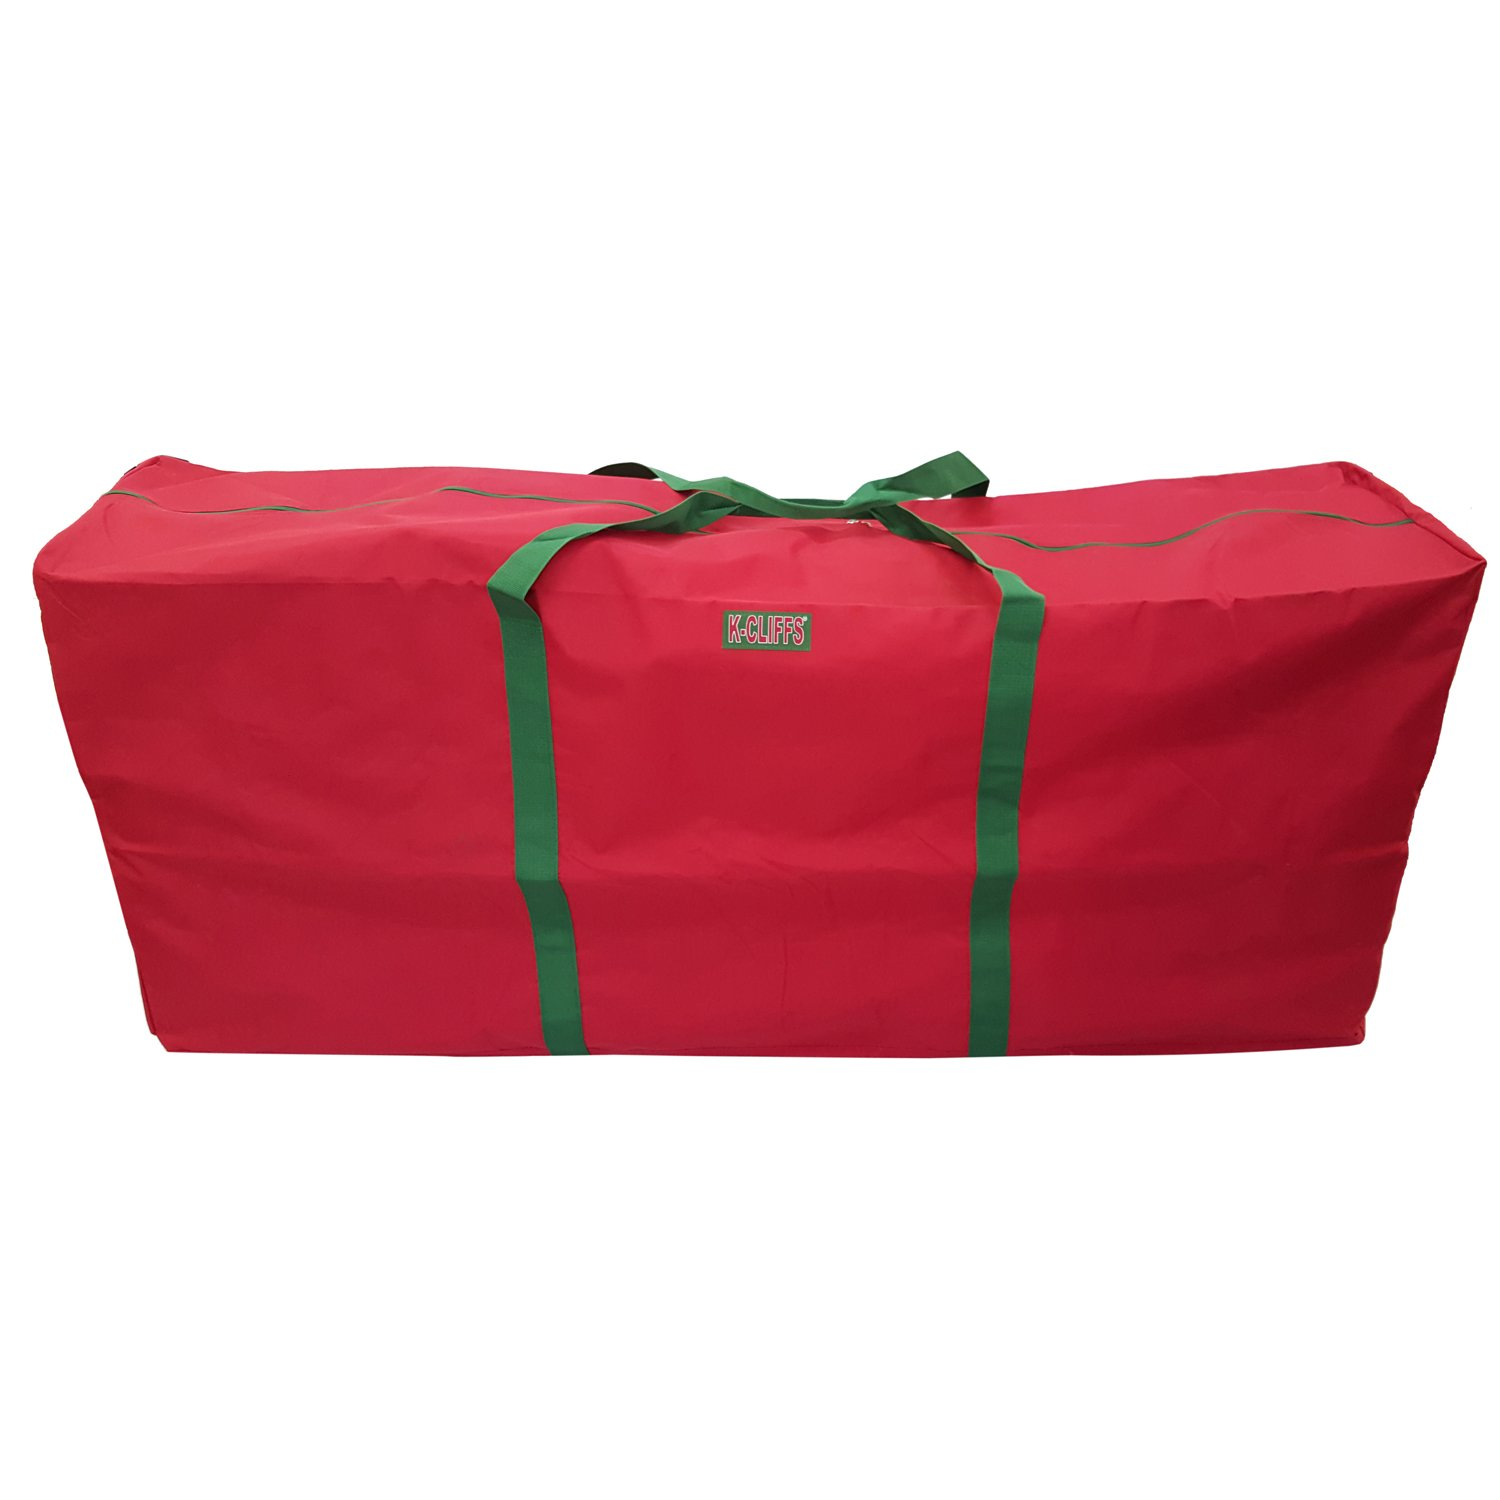 "Heavy Duty Christmas Tree Storage Bag Fit upto 7 Foot Artificial Tree Holiday Red Extra Large 48""x15""x20"""